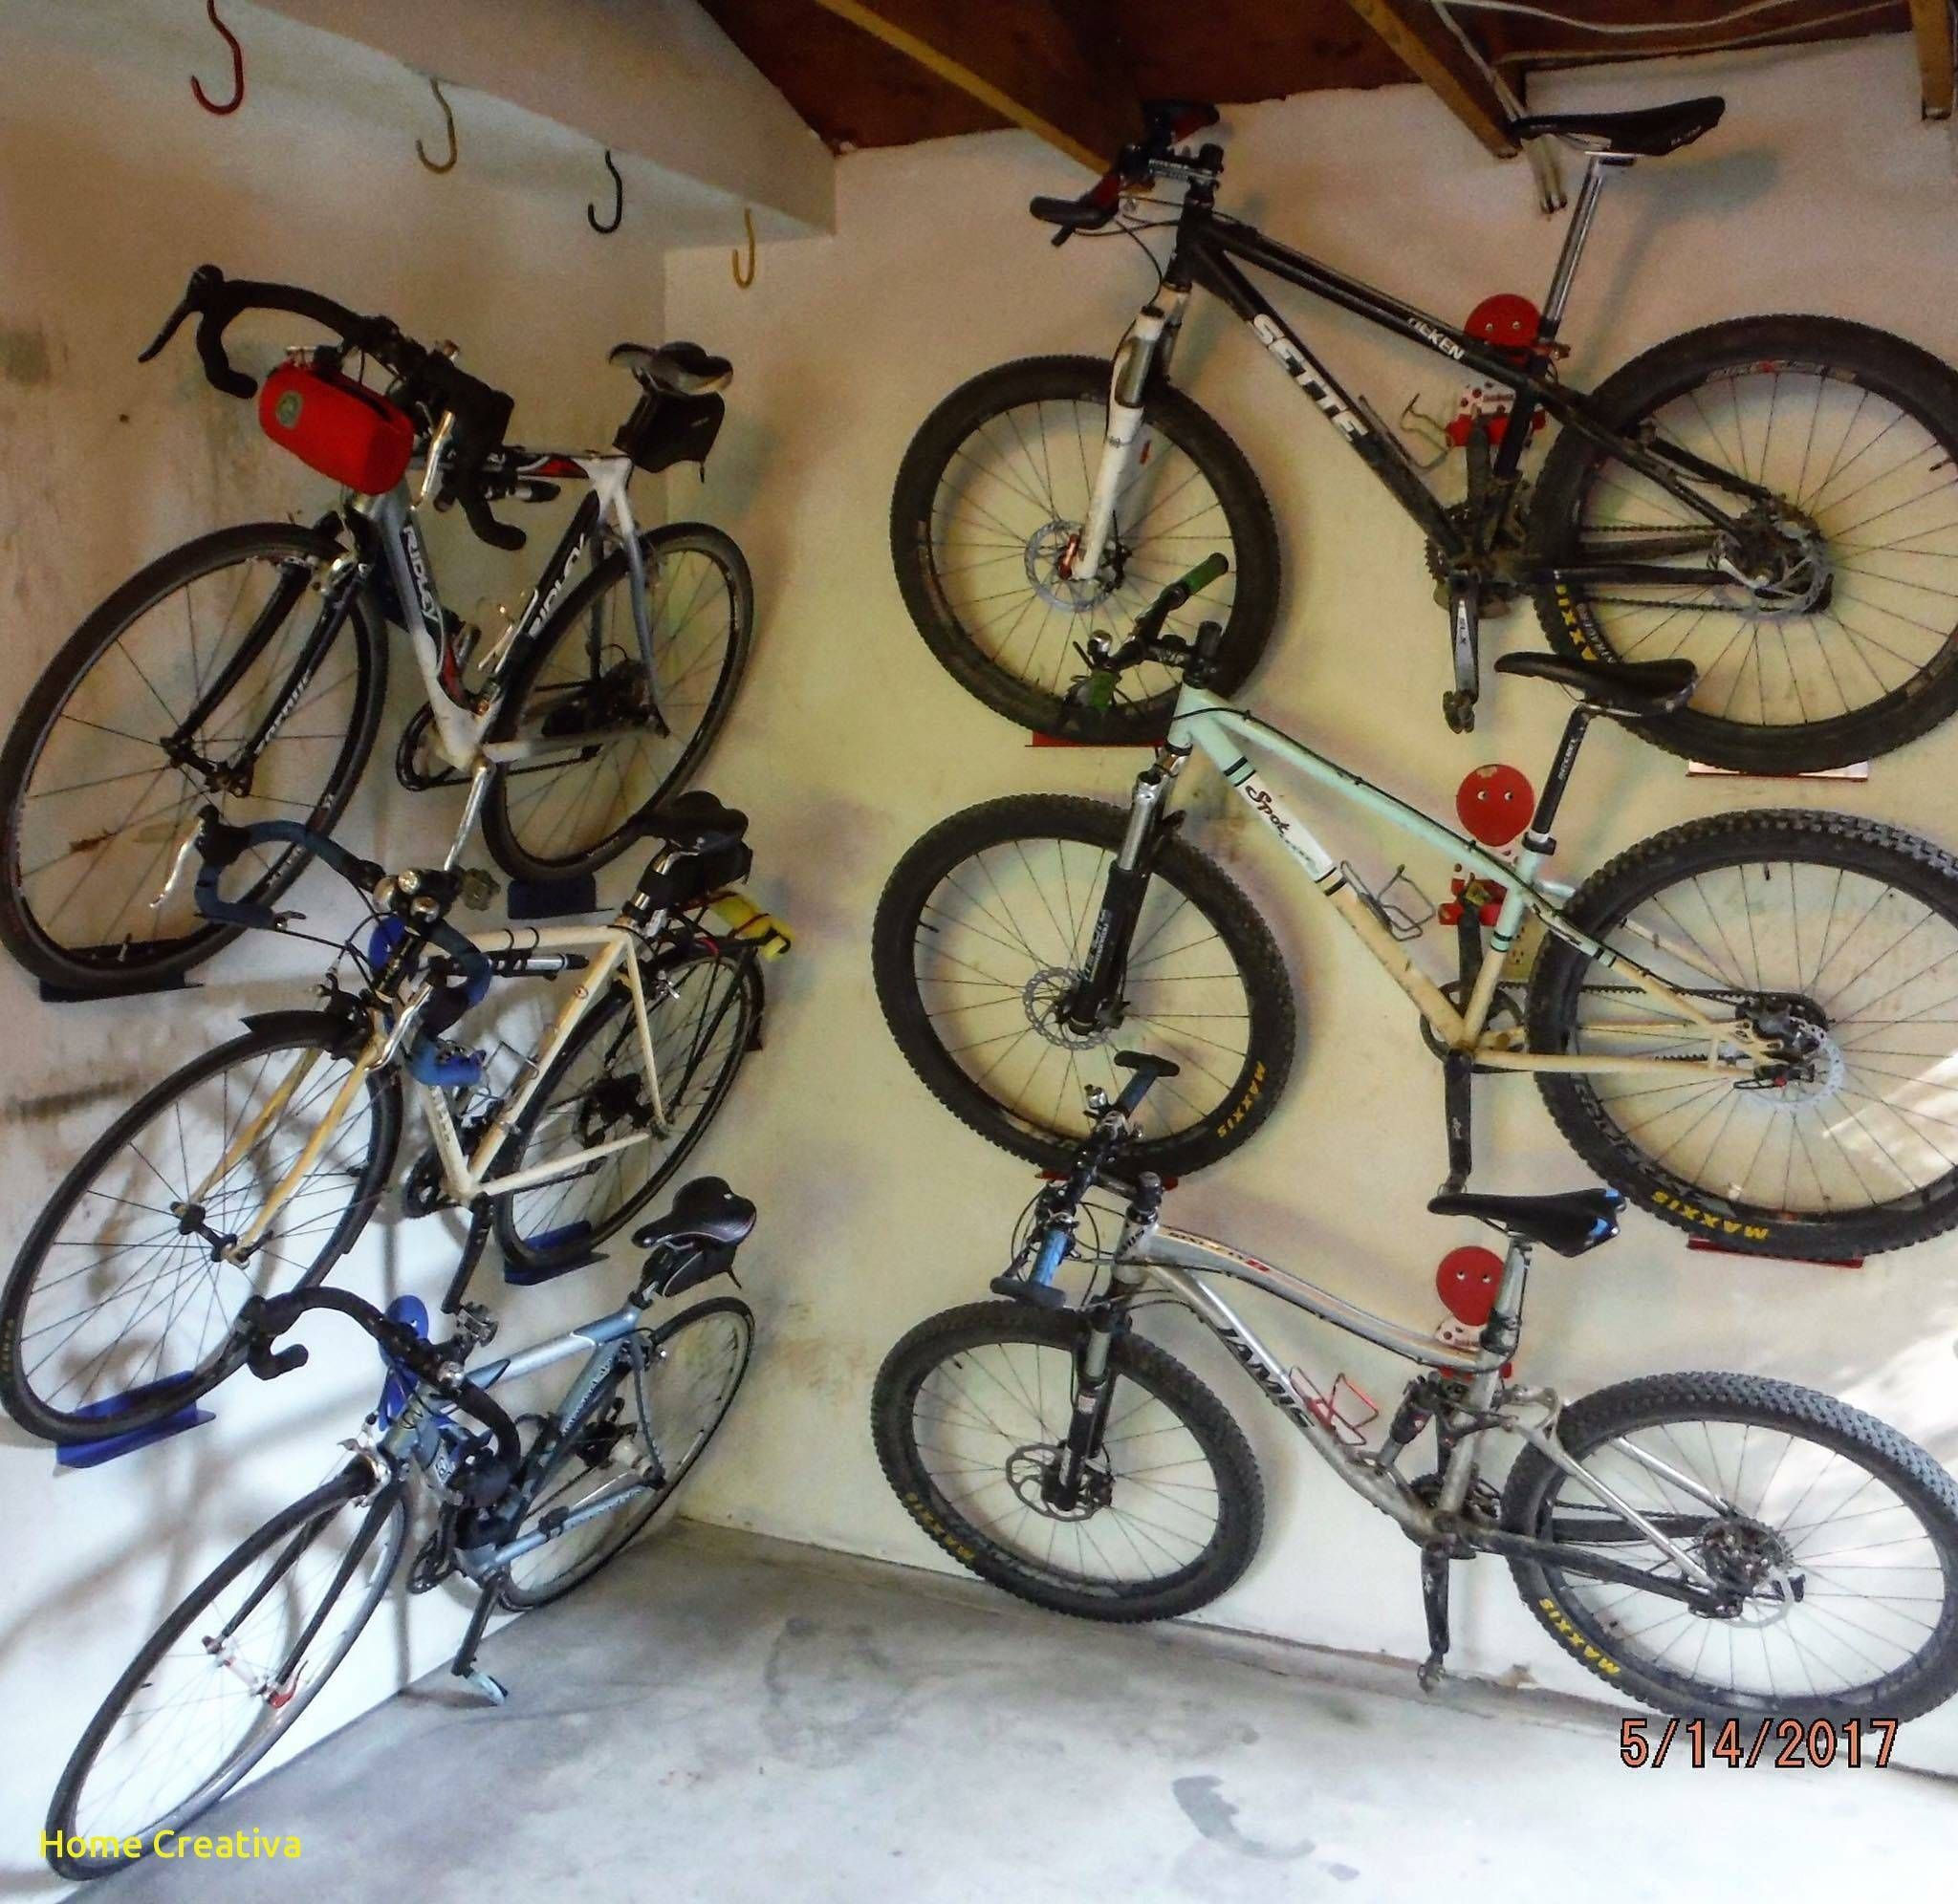 New Wall Mount Mountain Bike Rack Bike Storage Room Wall Mount